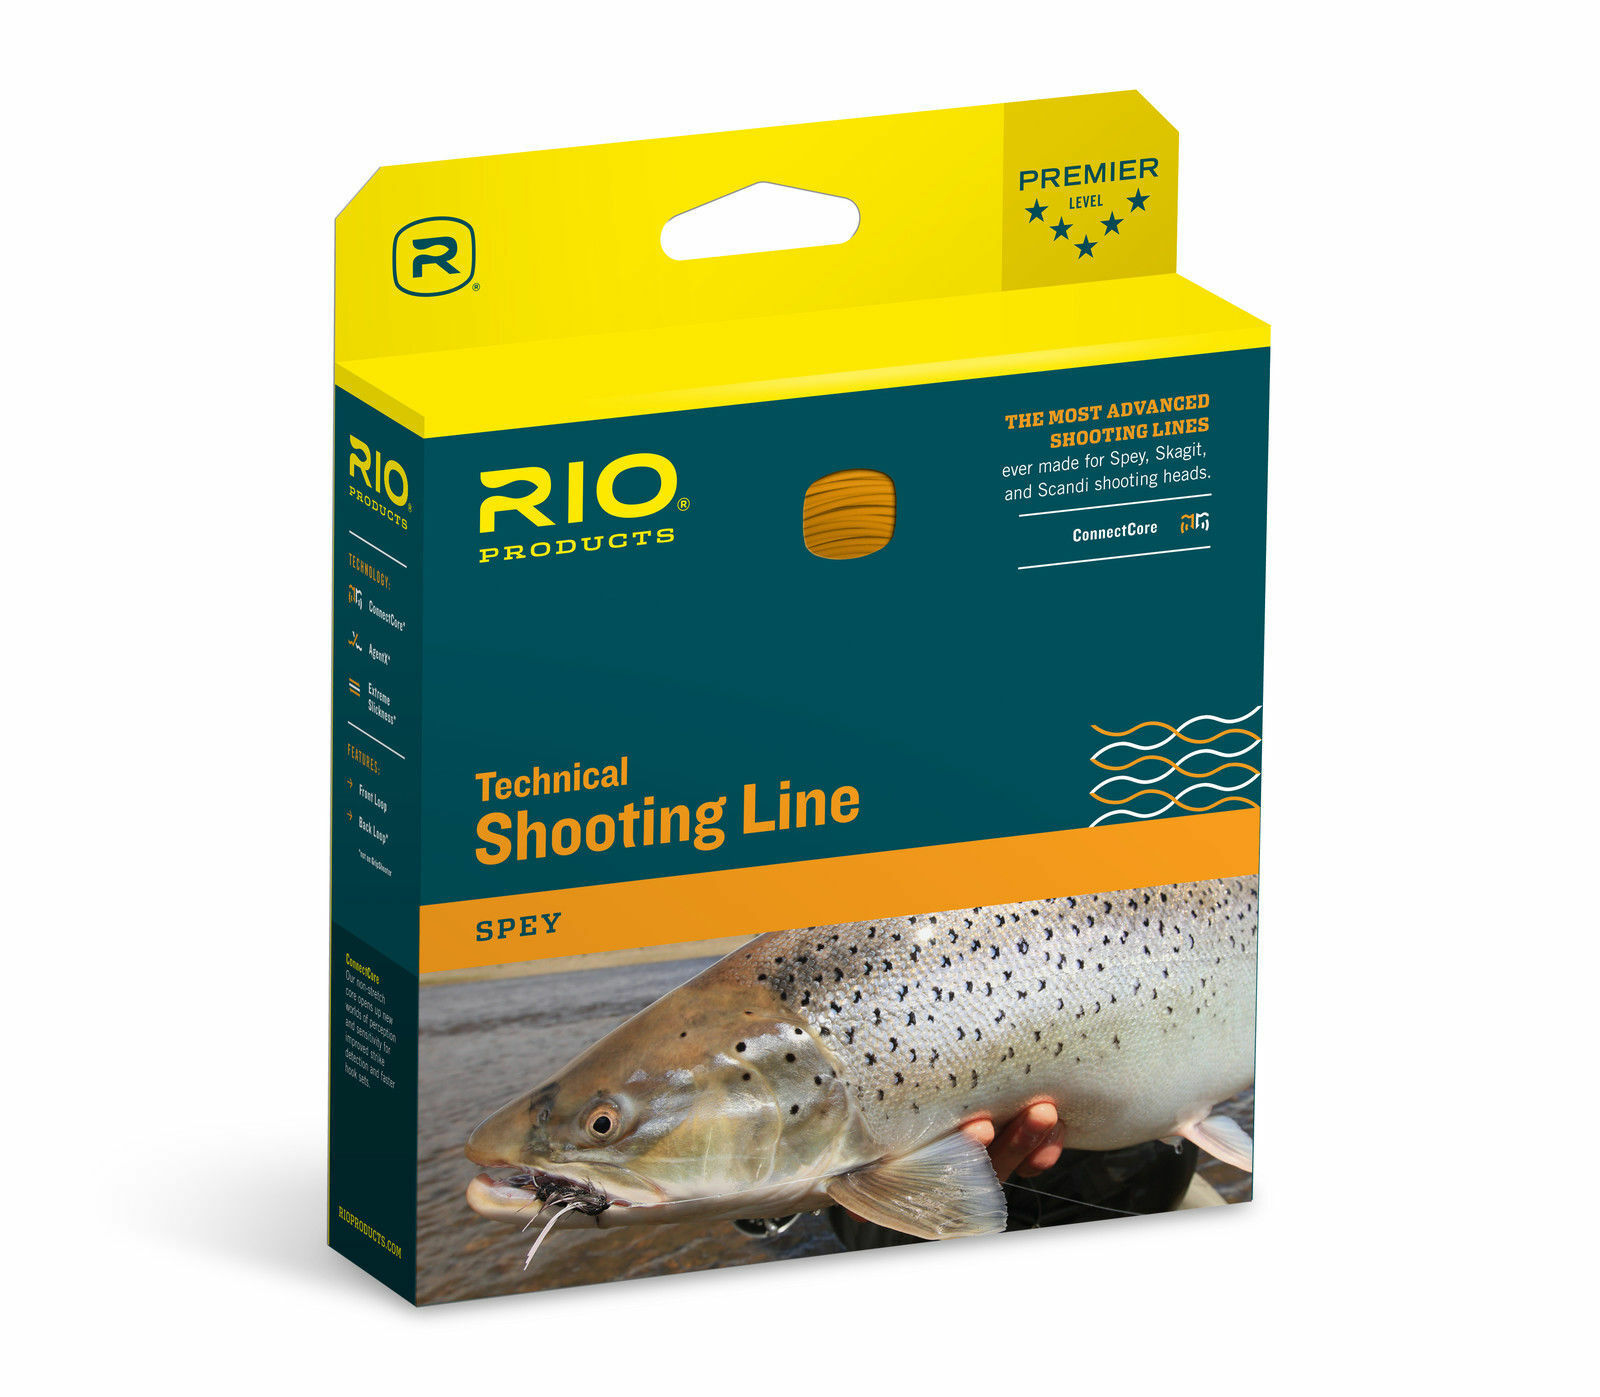 RIO GRIPSHOOTER 35 LB SPEY 15 FT COATED  100 FT HARD NYLON SHOOTING FLY LINE  not to be missed!